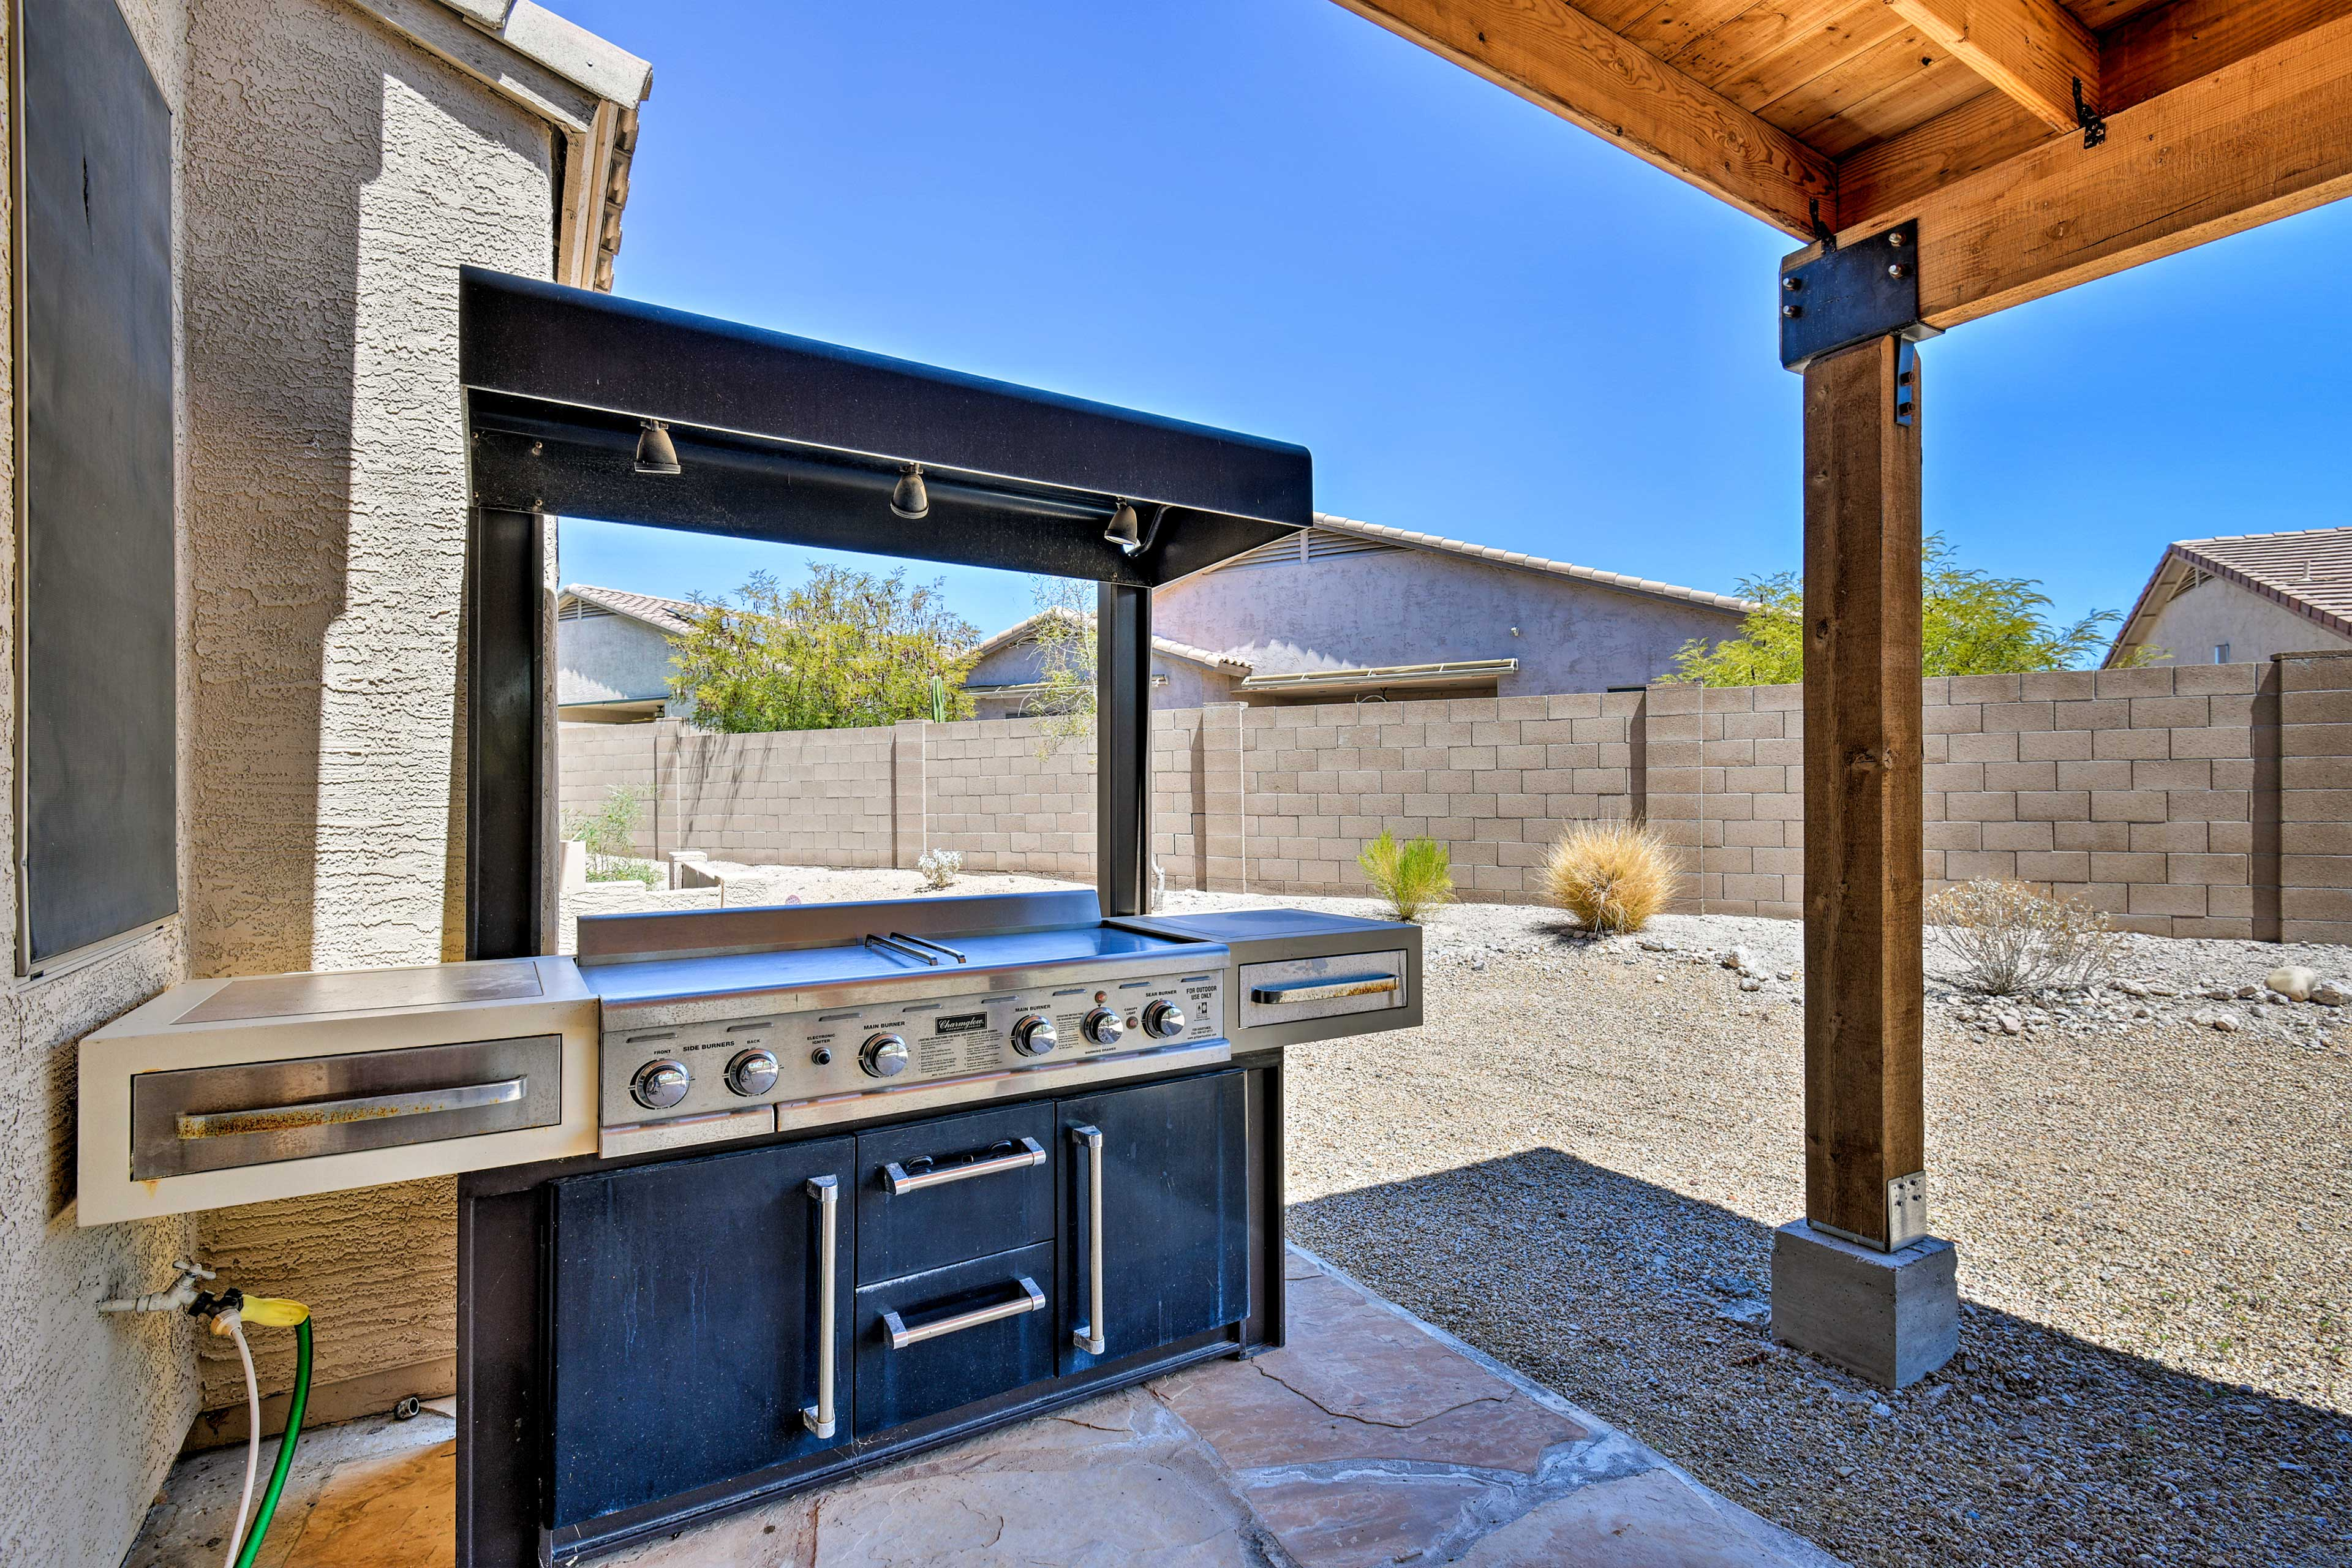 Fire up the gas grill for a cookout.